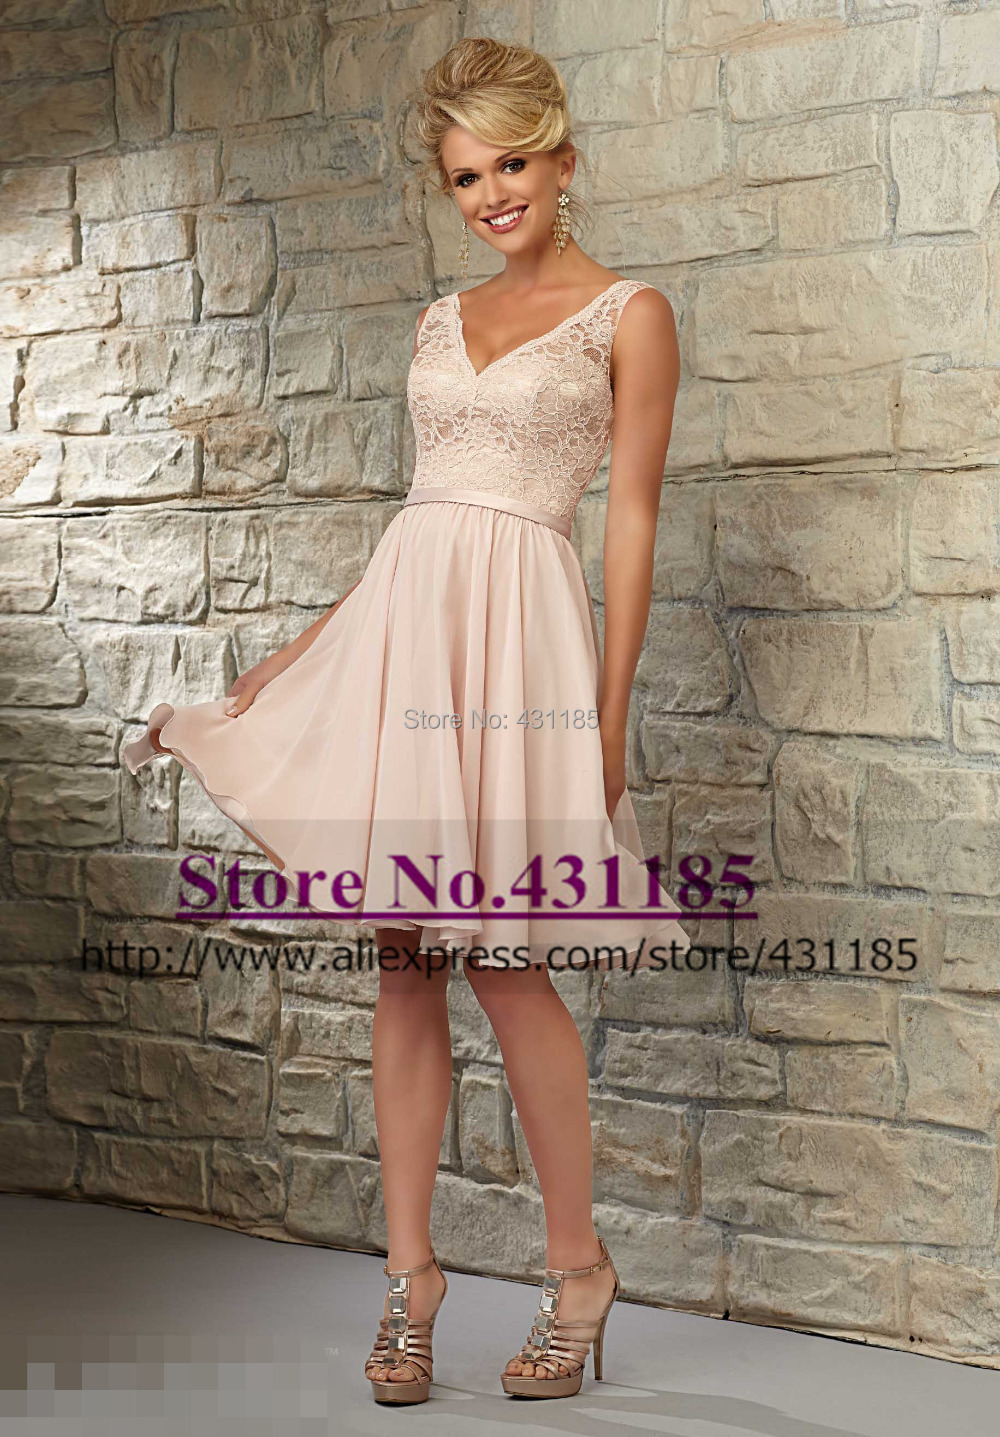 New modern wedding dresses custom vintage bridesmaid dresses custom vintage bridesmaid dresses ombrellifo Gallery